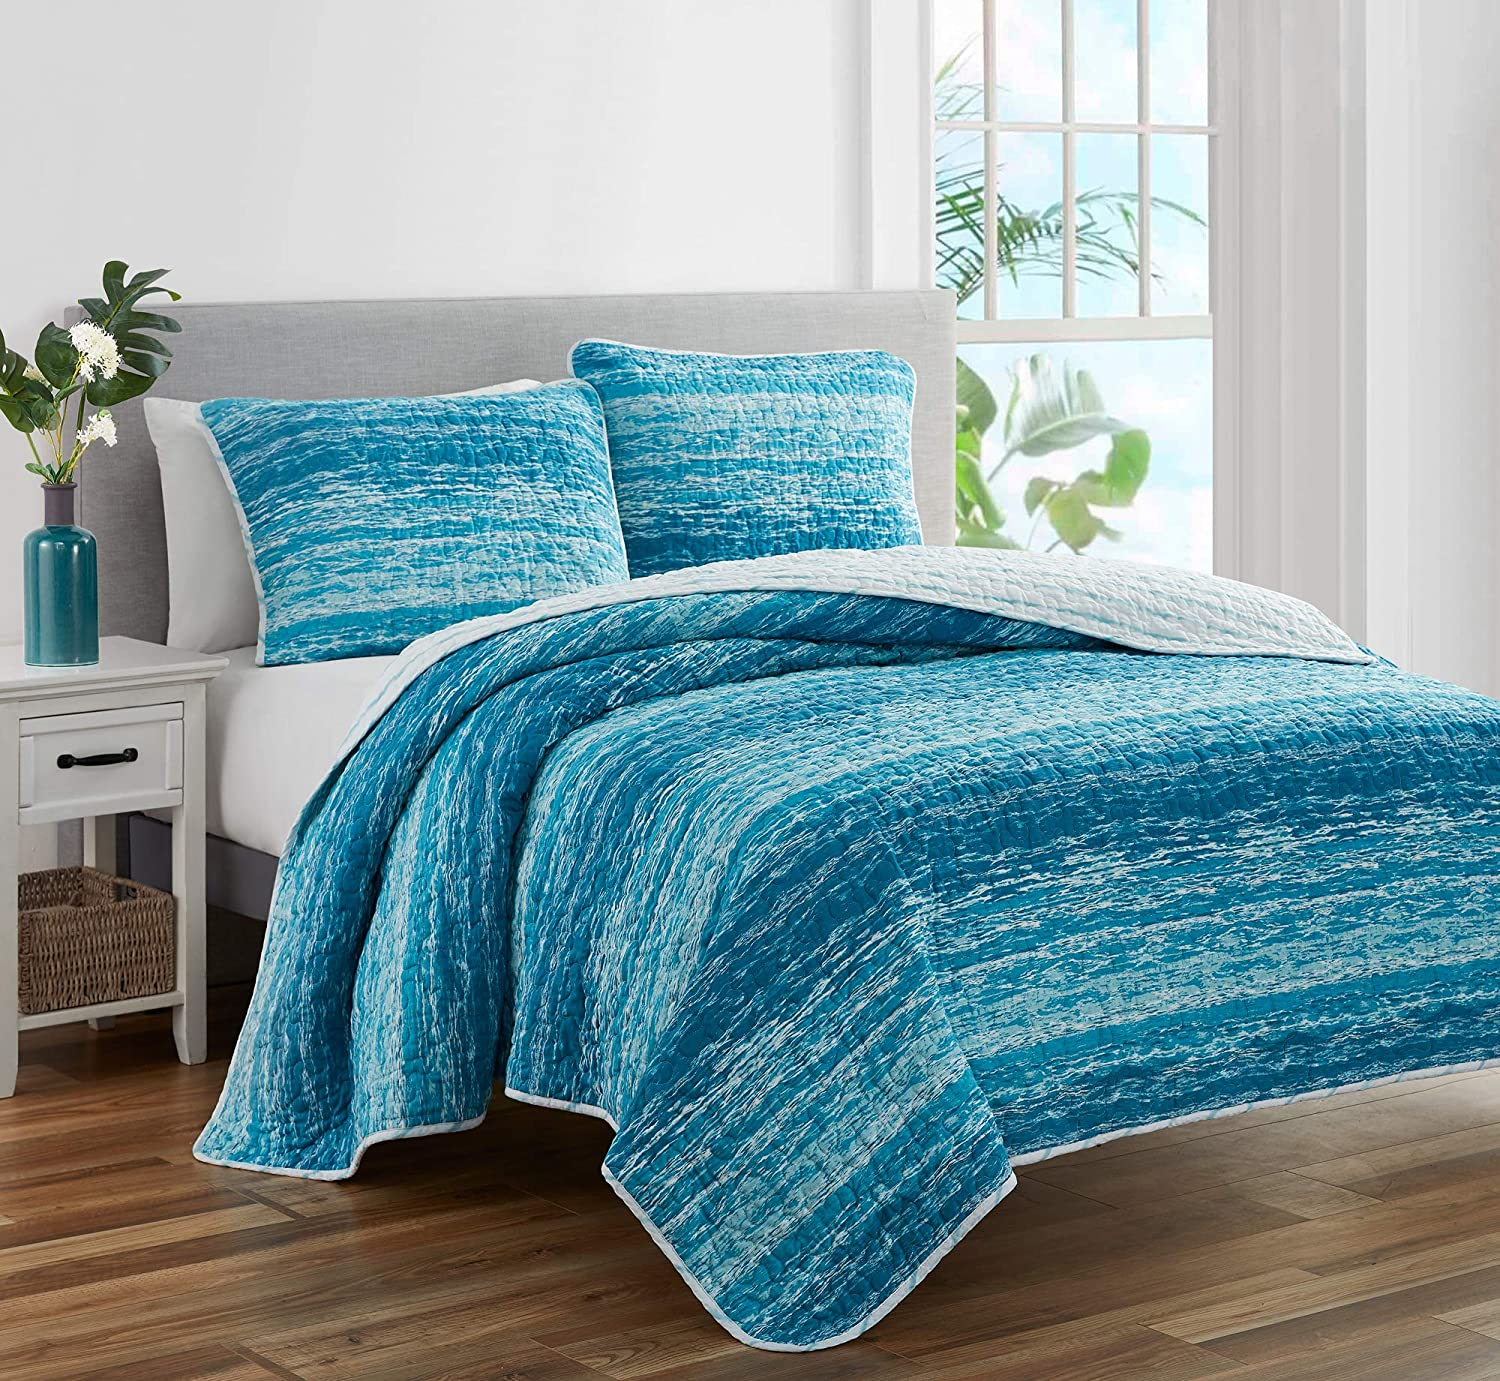 MYTEX LLC Ocean 3-Piece Prewashed Quilt Set Featuring a Coastal Theme,Natural Puckered/Textured Look, and Unique Watercolor Stripe, Blue, King